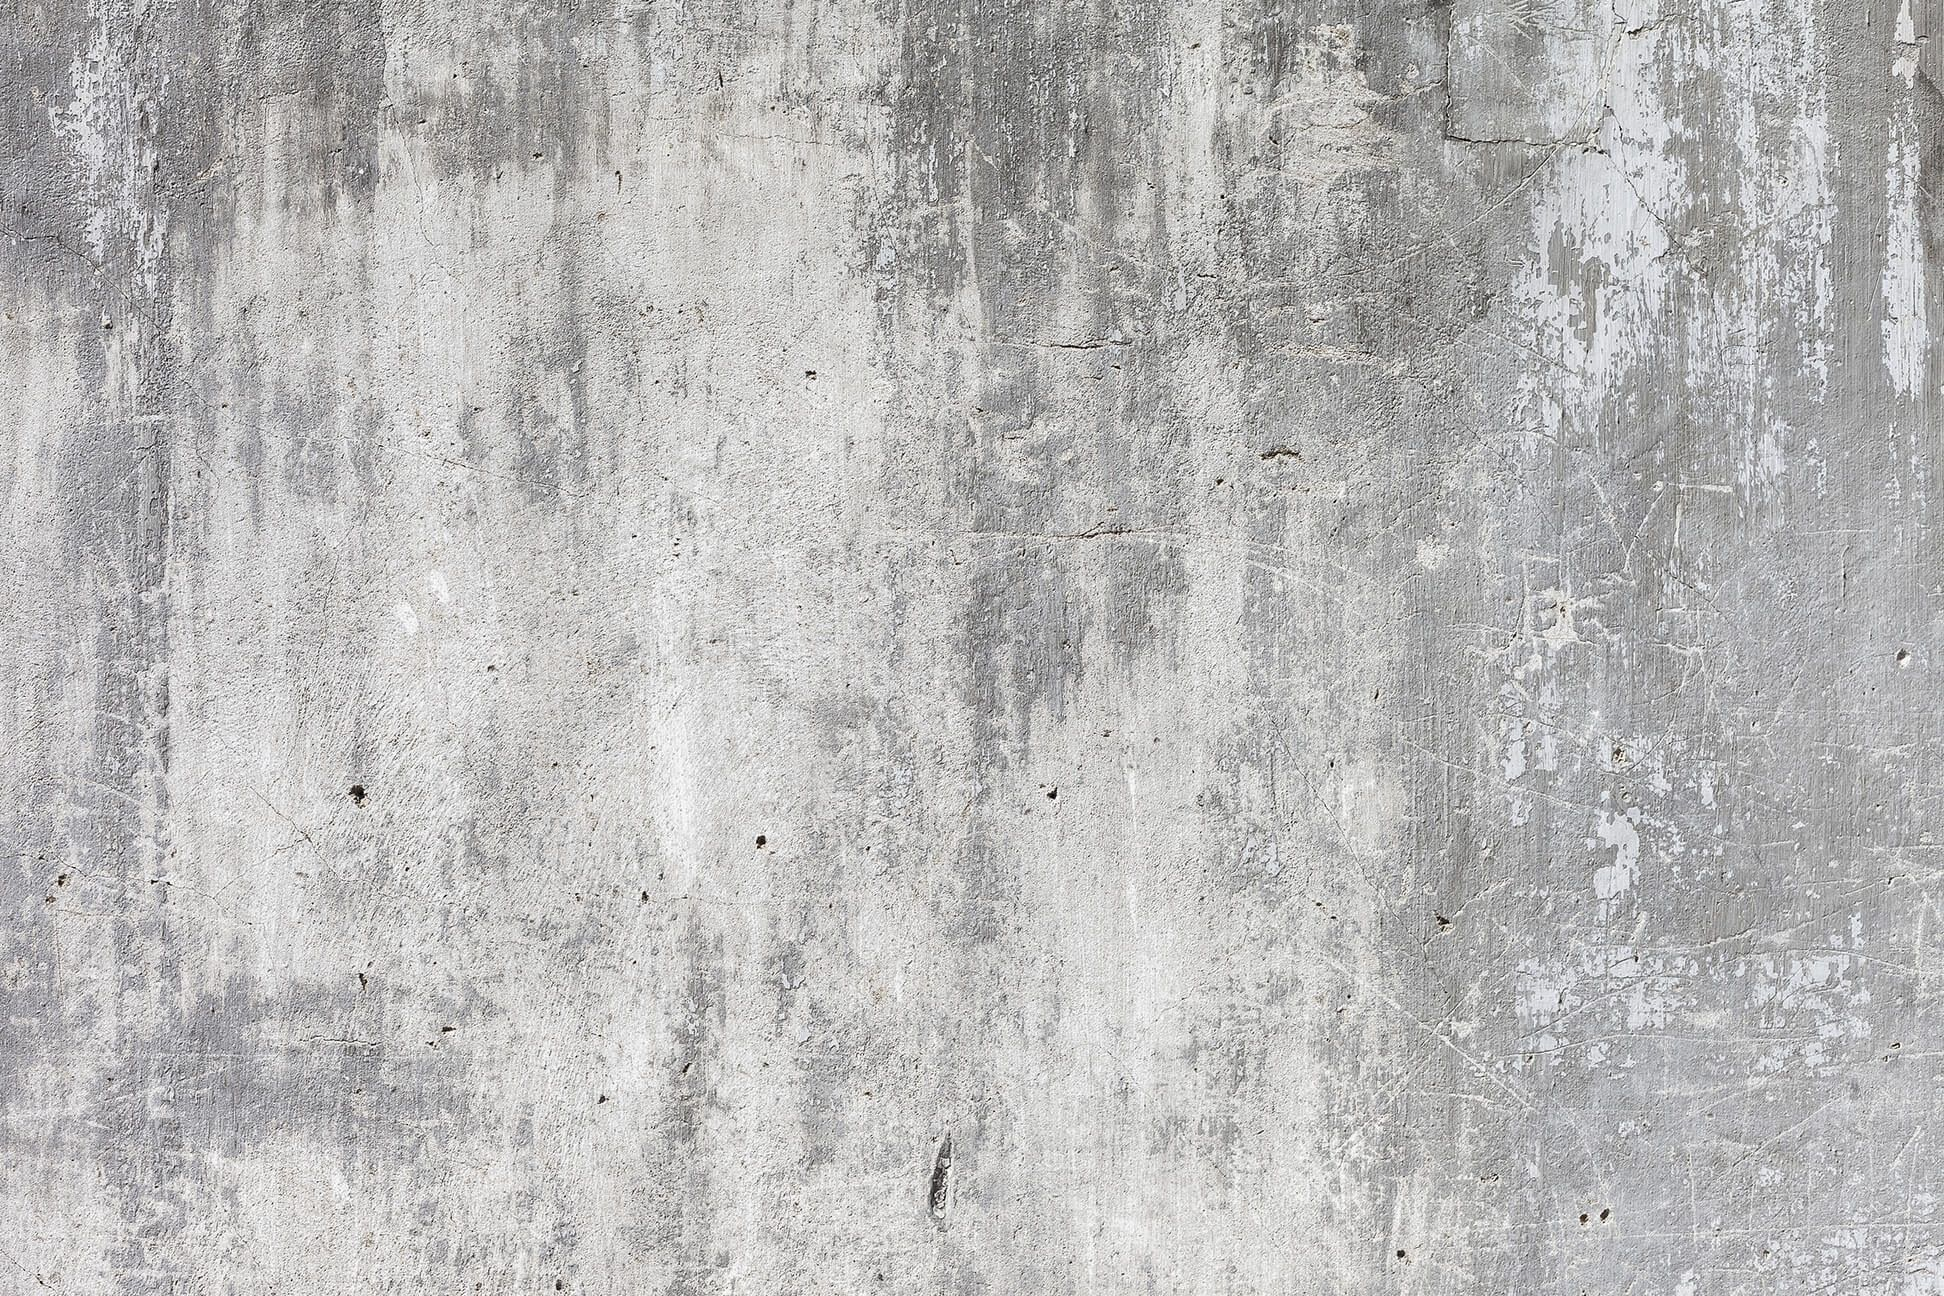 Concrete Wall Mural Grey Grunge Cement Wall Mural Concretewall Mural Industrial Wallpaper Concrete Wallpaper Cement Walls